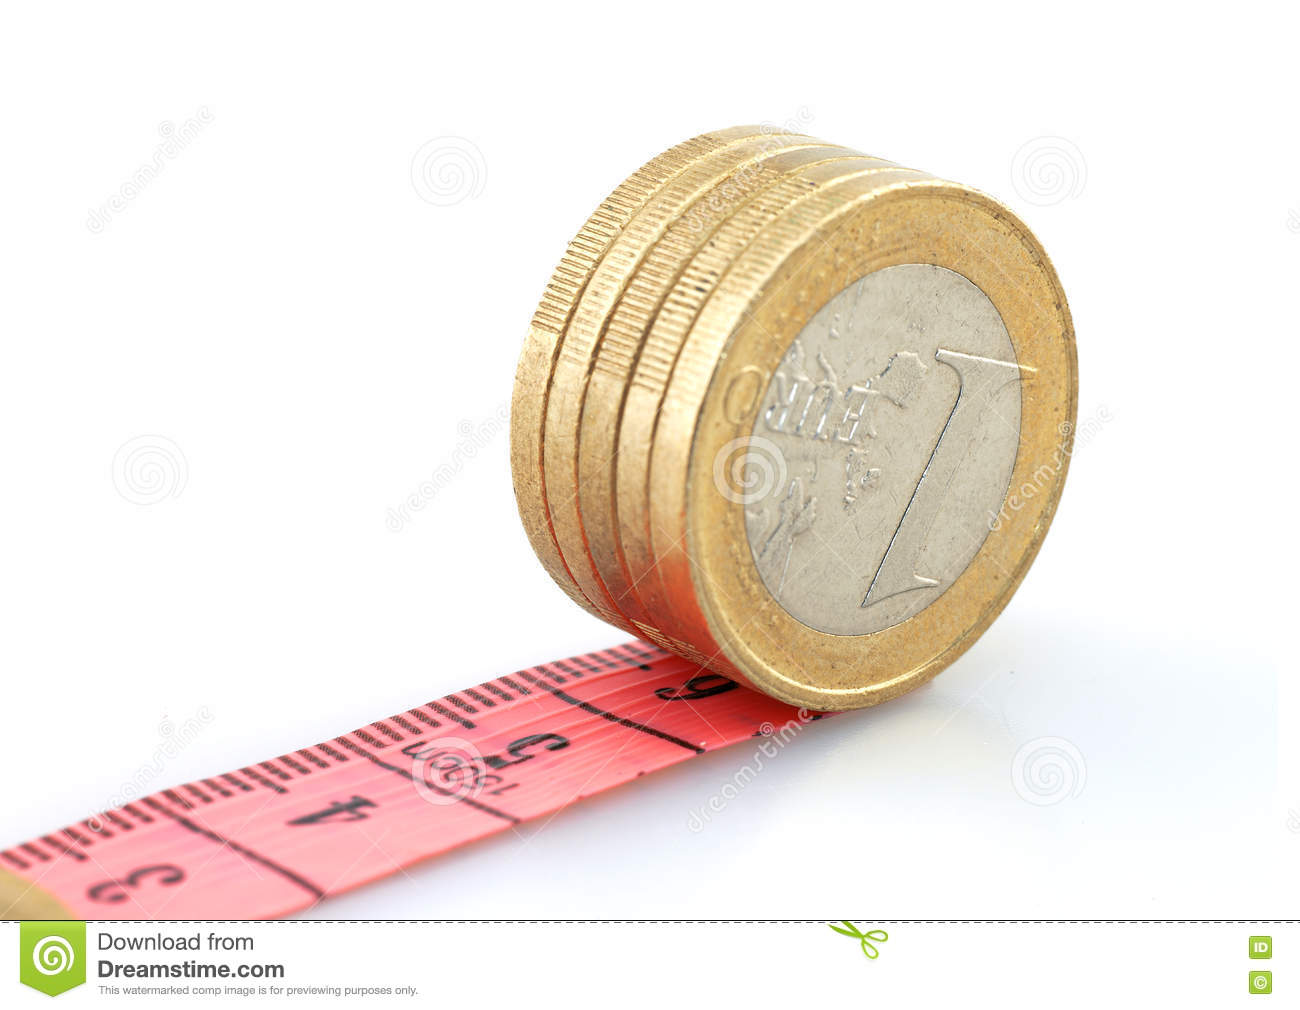 Euro coins running on tape